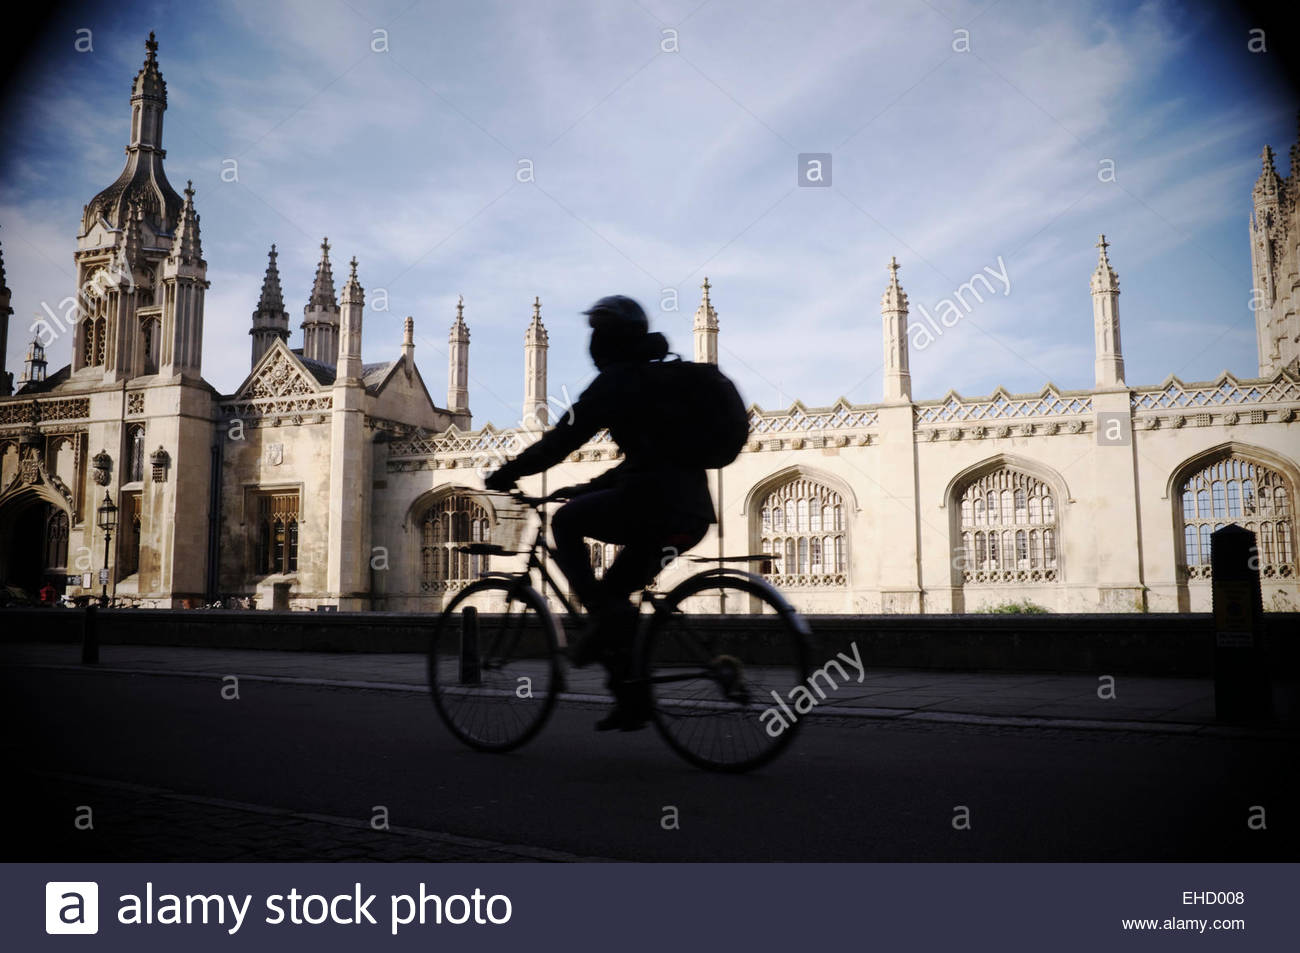 A cyclist travels along King's Parade, with King's College providing a backdrop. Cambridge, Cambridgeshire, UK. Stock Photo